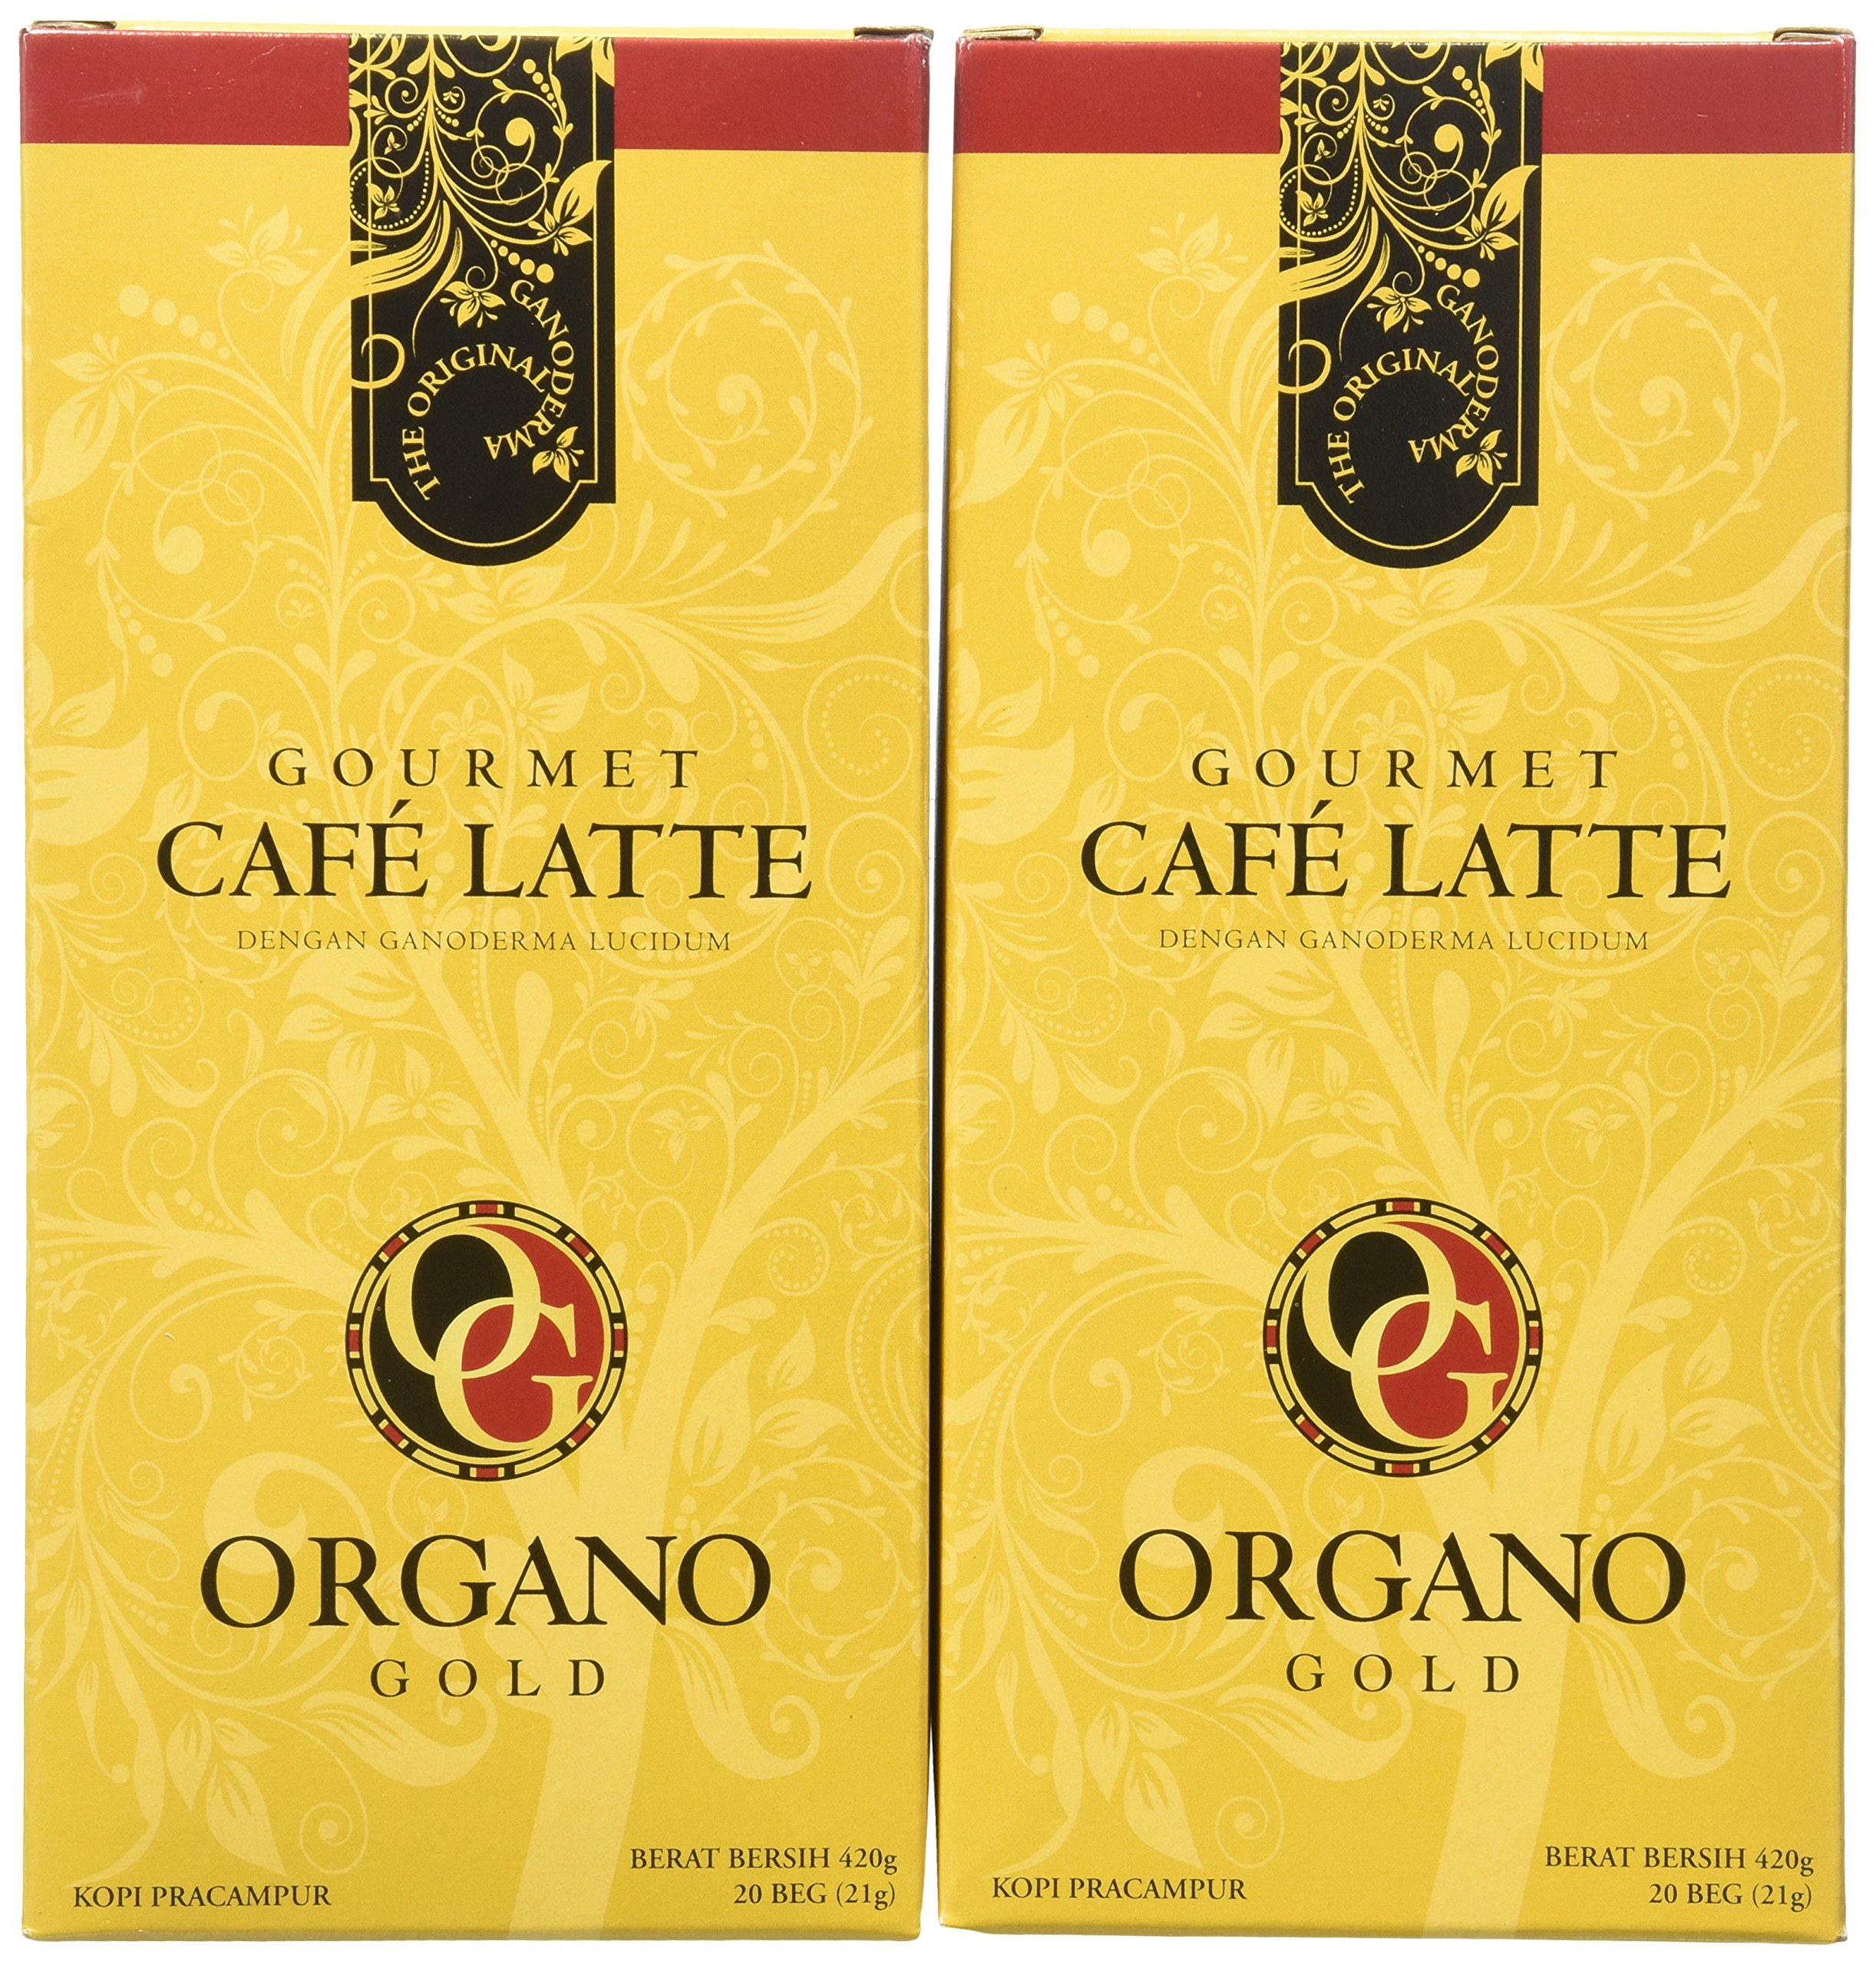 Amazon organo gold gourmet black ganoderma coffee 1 box of 30 2 boxes of organo gold ganoderma gourmet caf late 20 sachets per box colourmoves